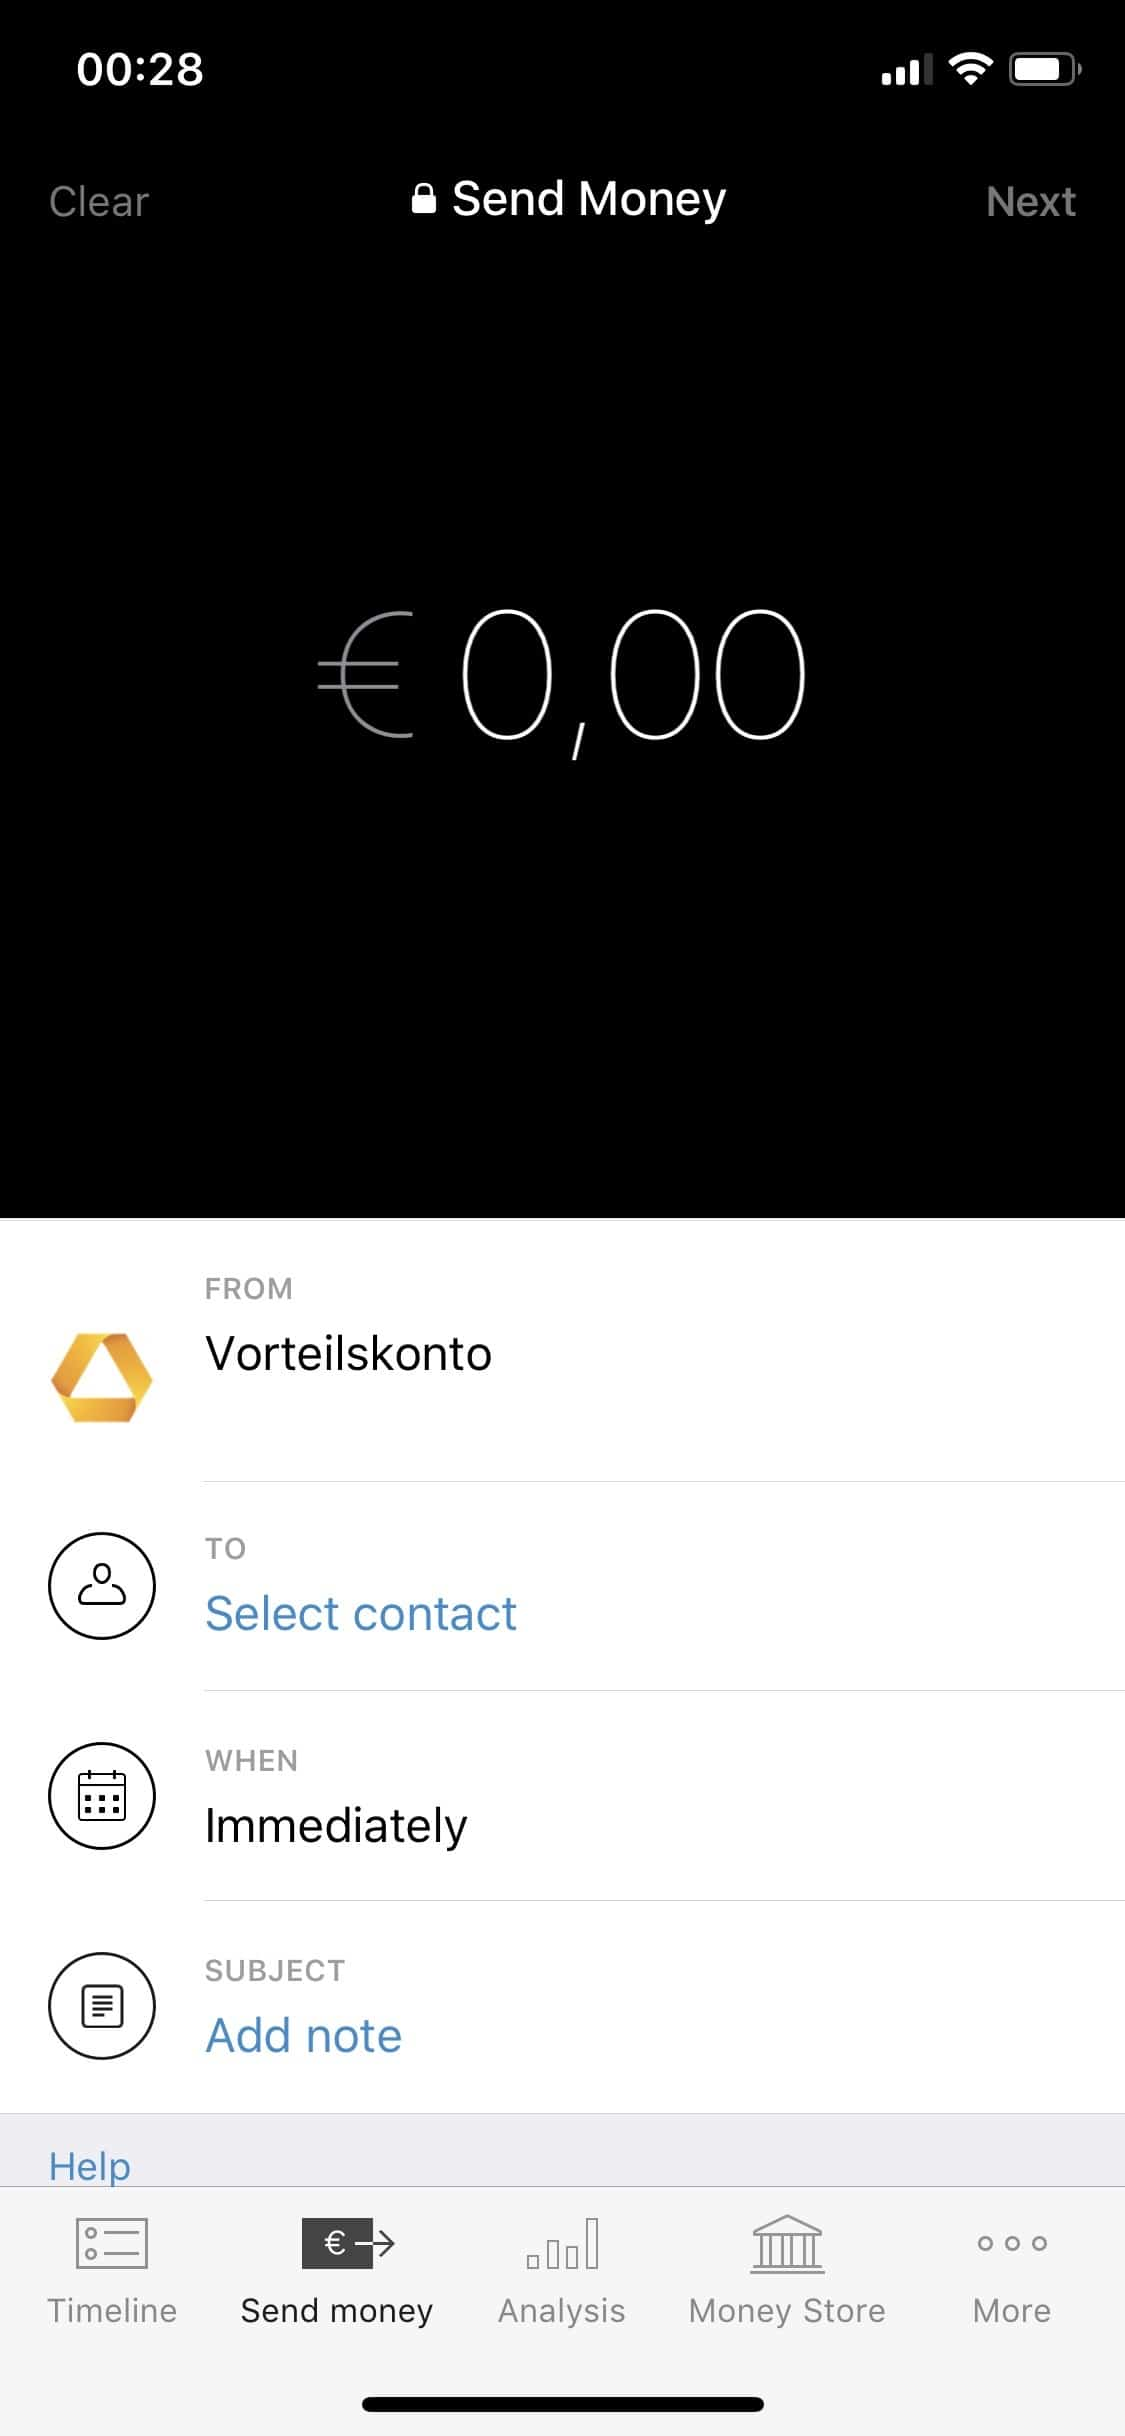 Numbrs - iPhone - iOS-App - Send Money - Geld senden